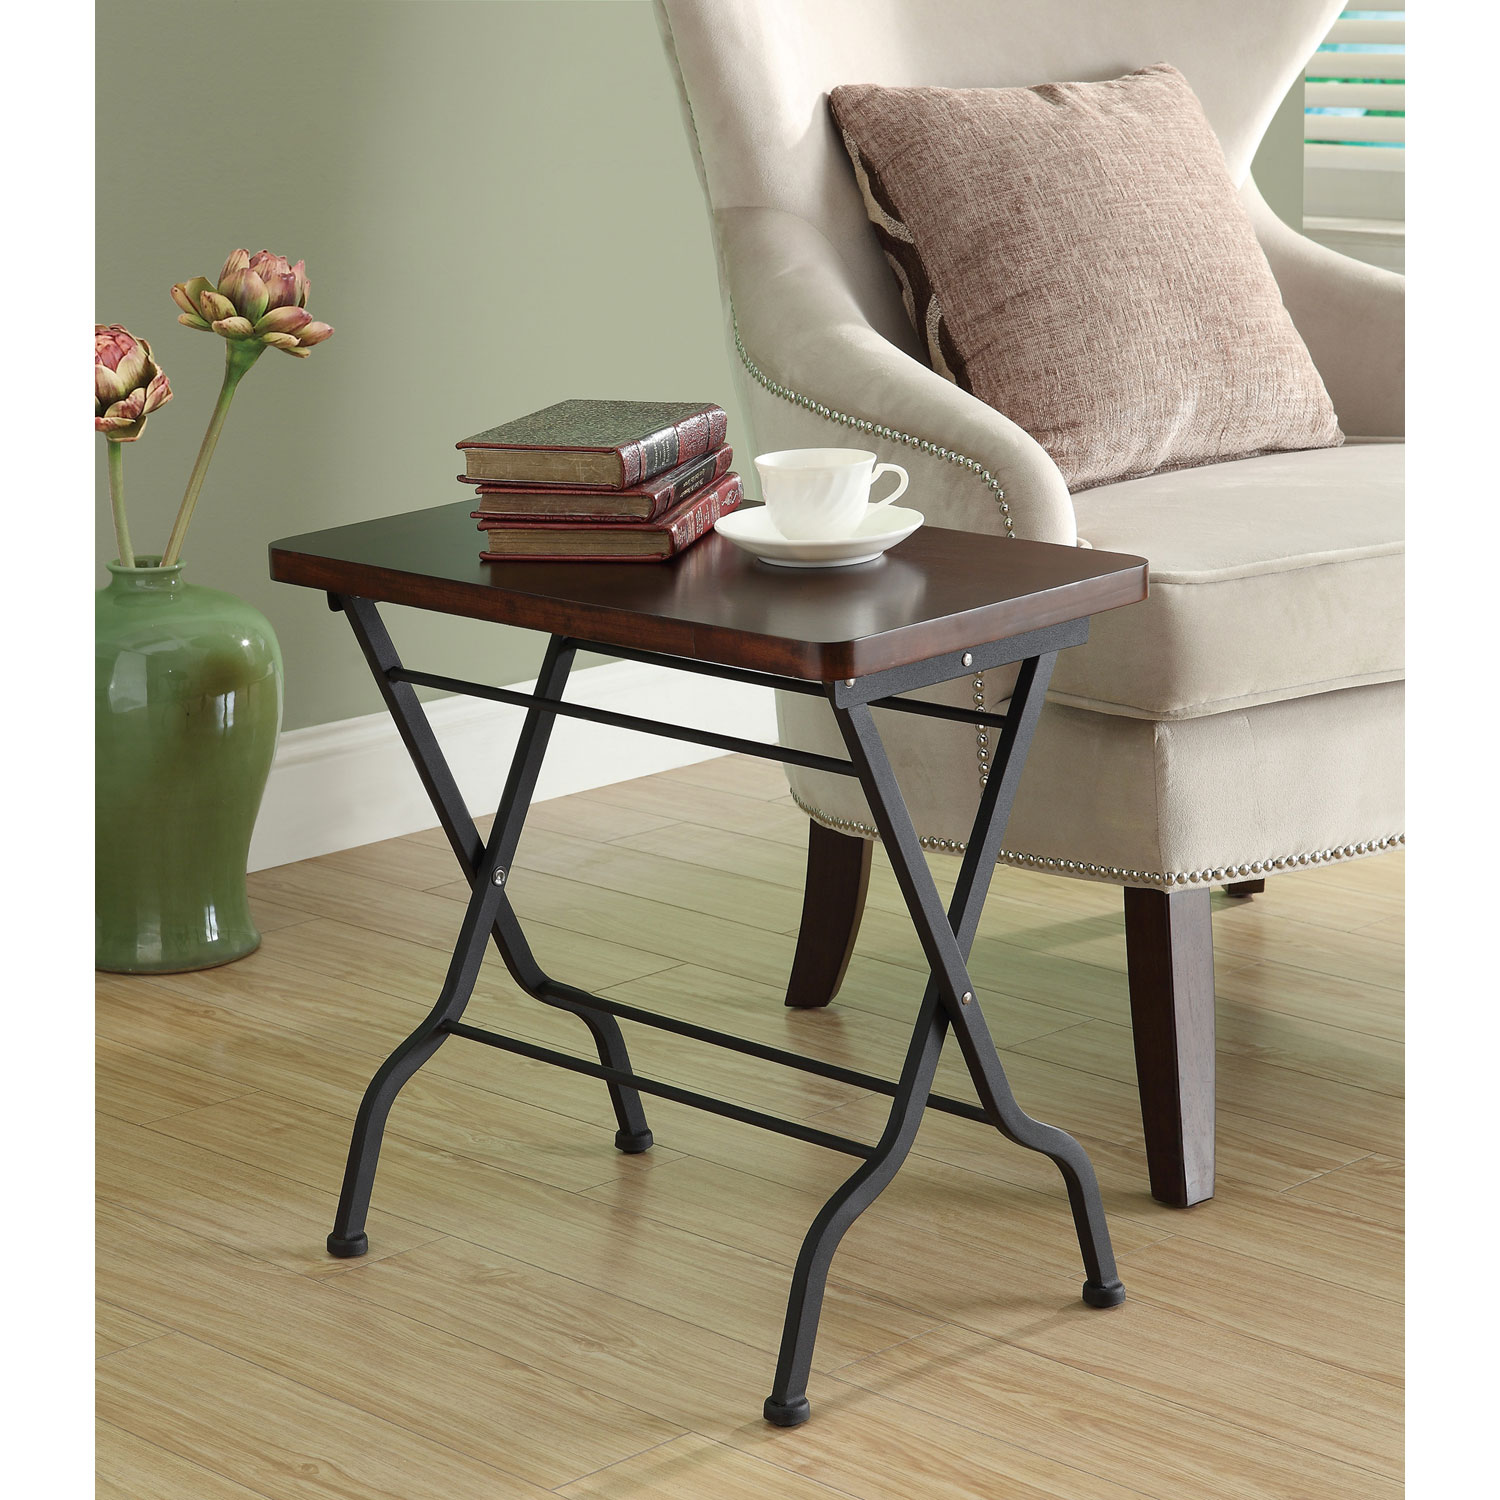 hawthorne ave accent table cherry charcoal black metal folding hover zoom white half moon console zebra chair tall chairs target yellow side wall lucite dining room pulaski